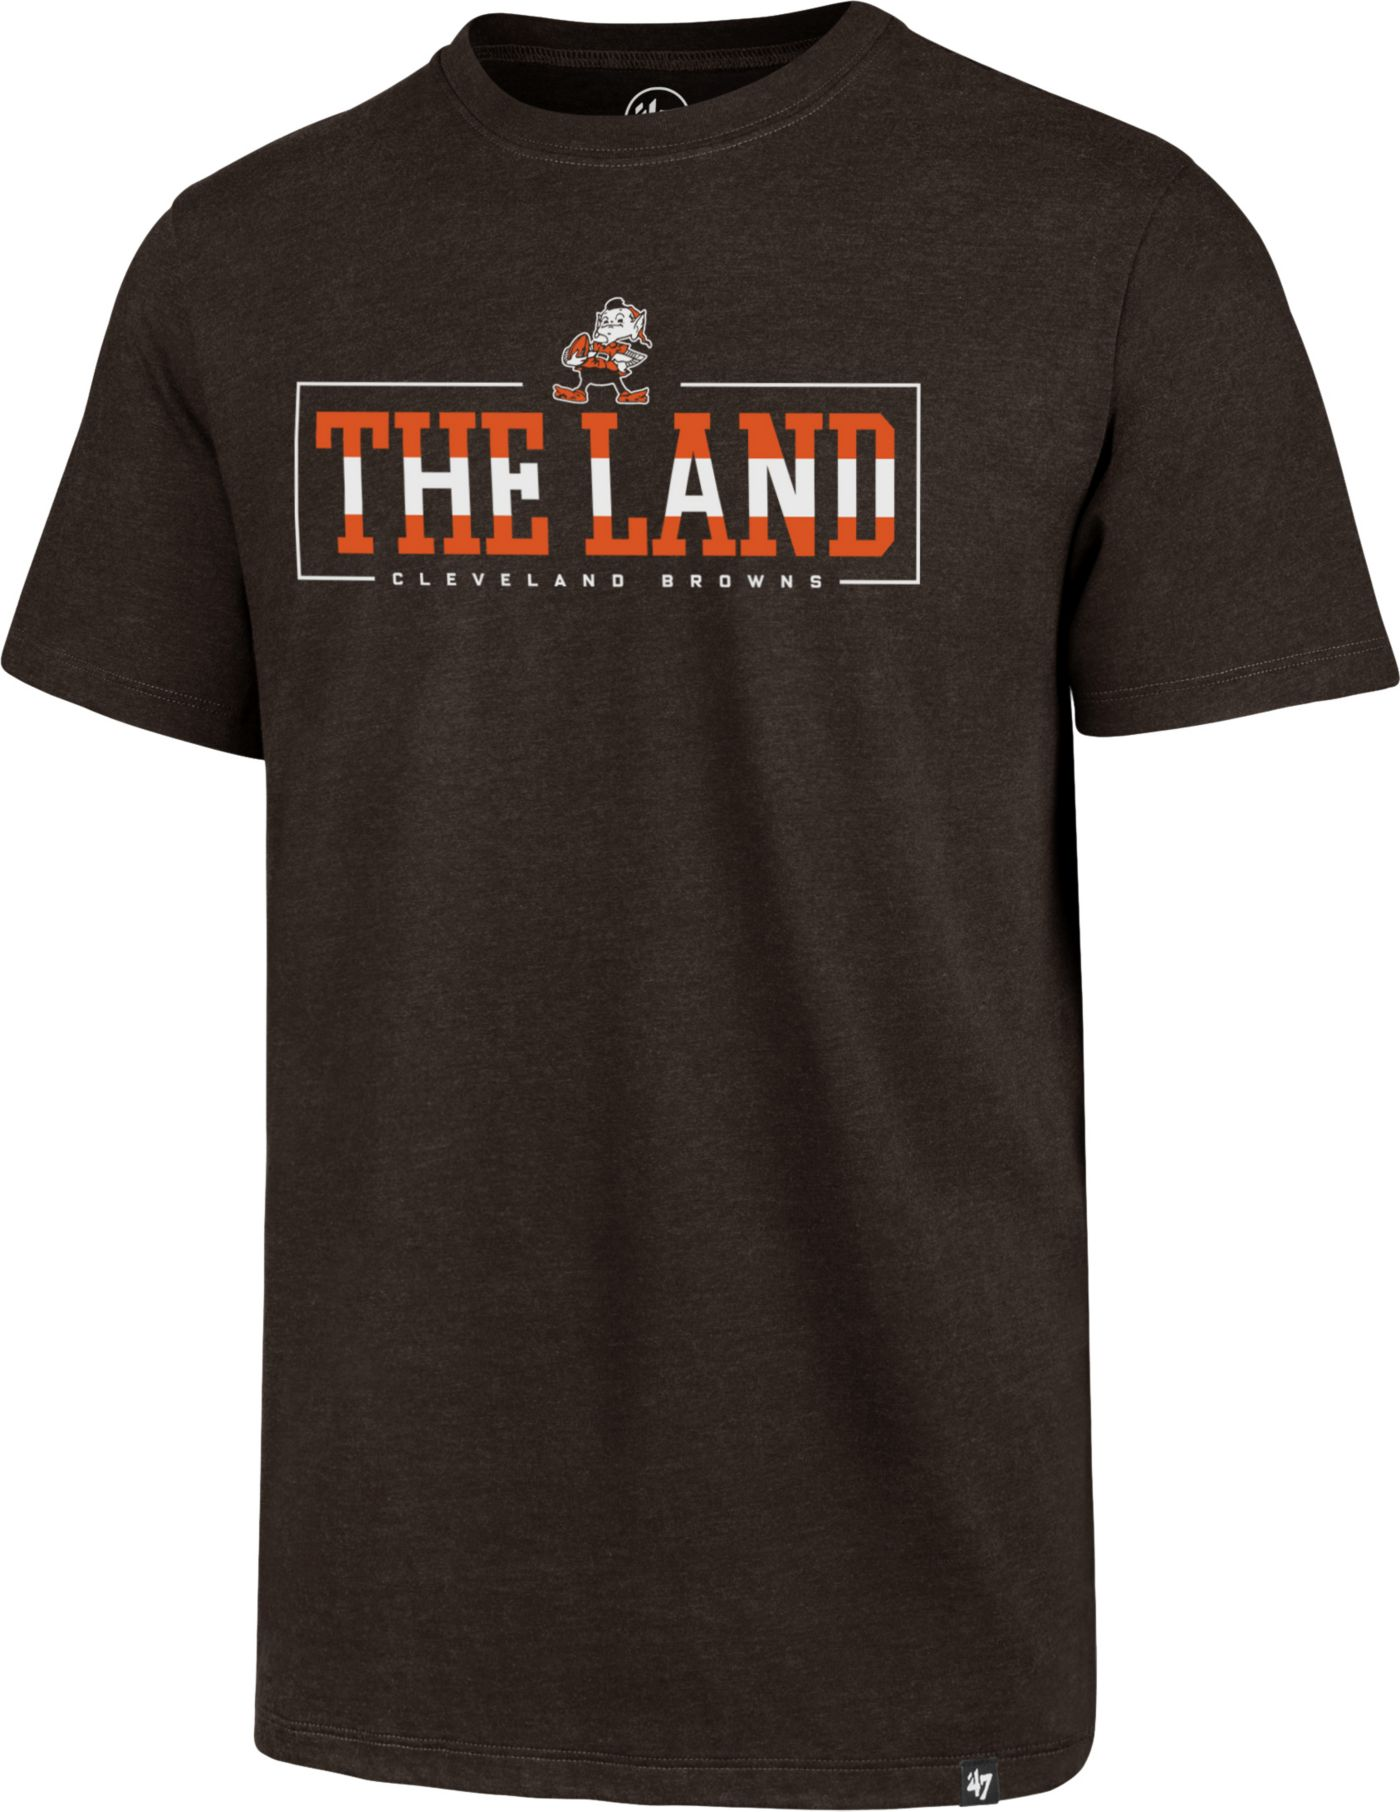 '47 Men's Cleveland Browns The Land Club Brown T-Shirt